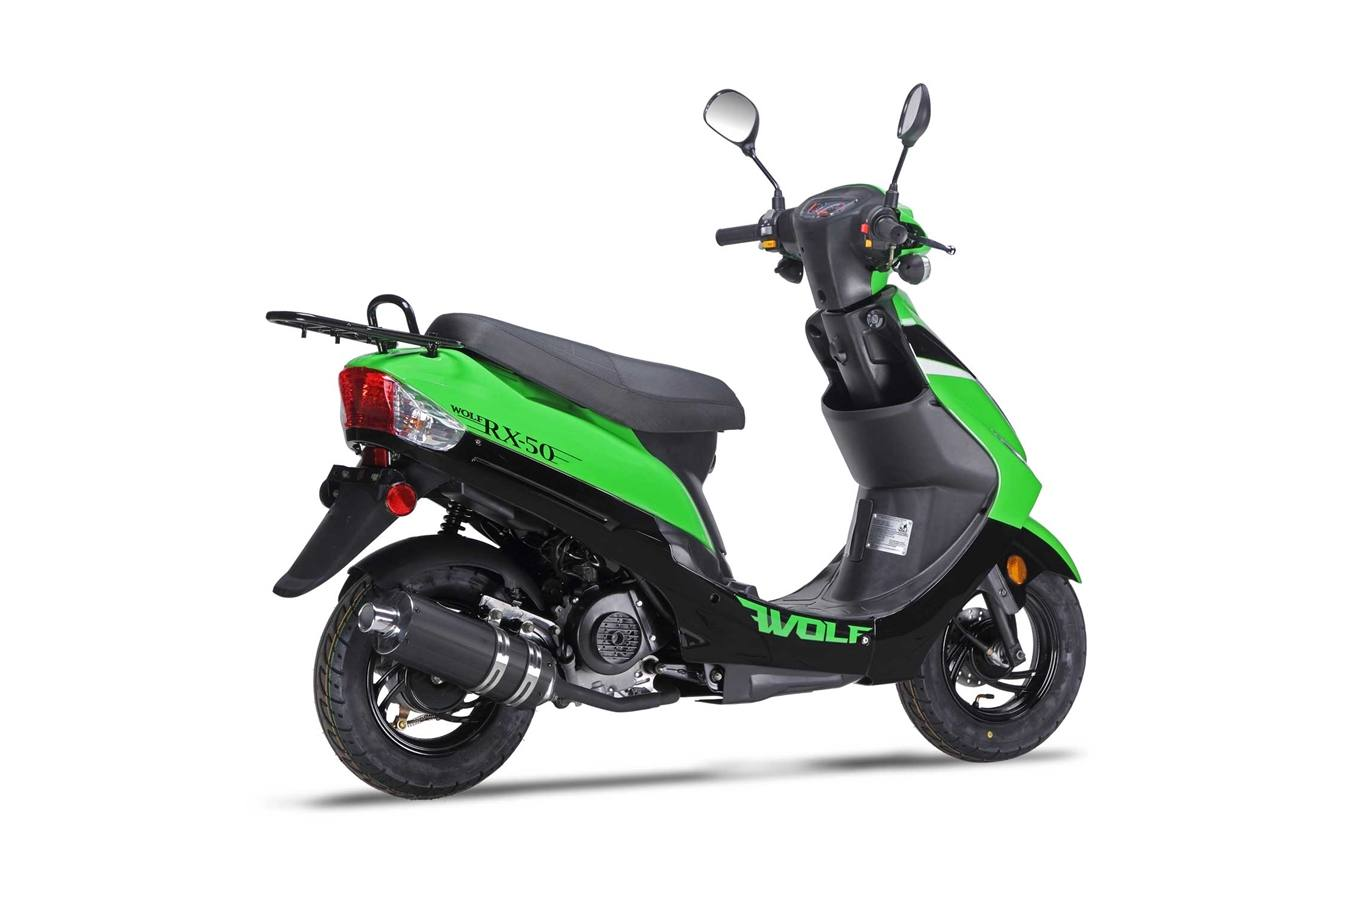 2019 Wolf Brand Scooters Wolf RX-50